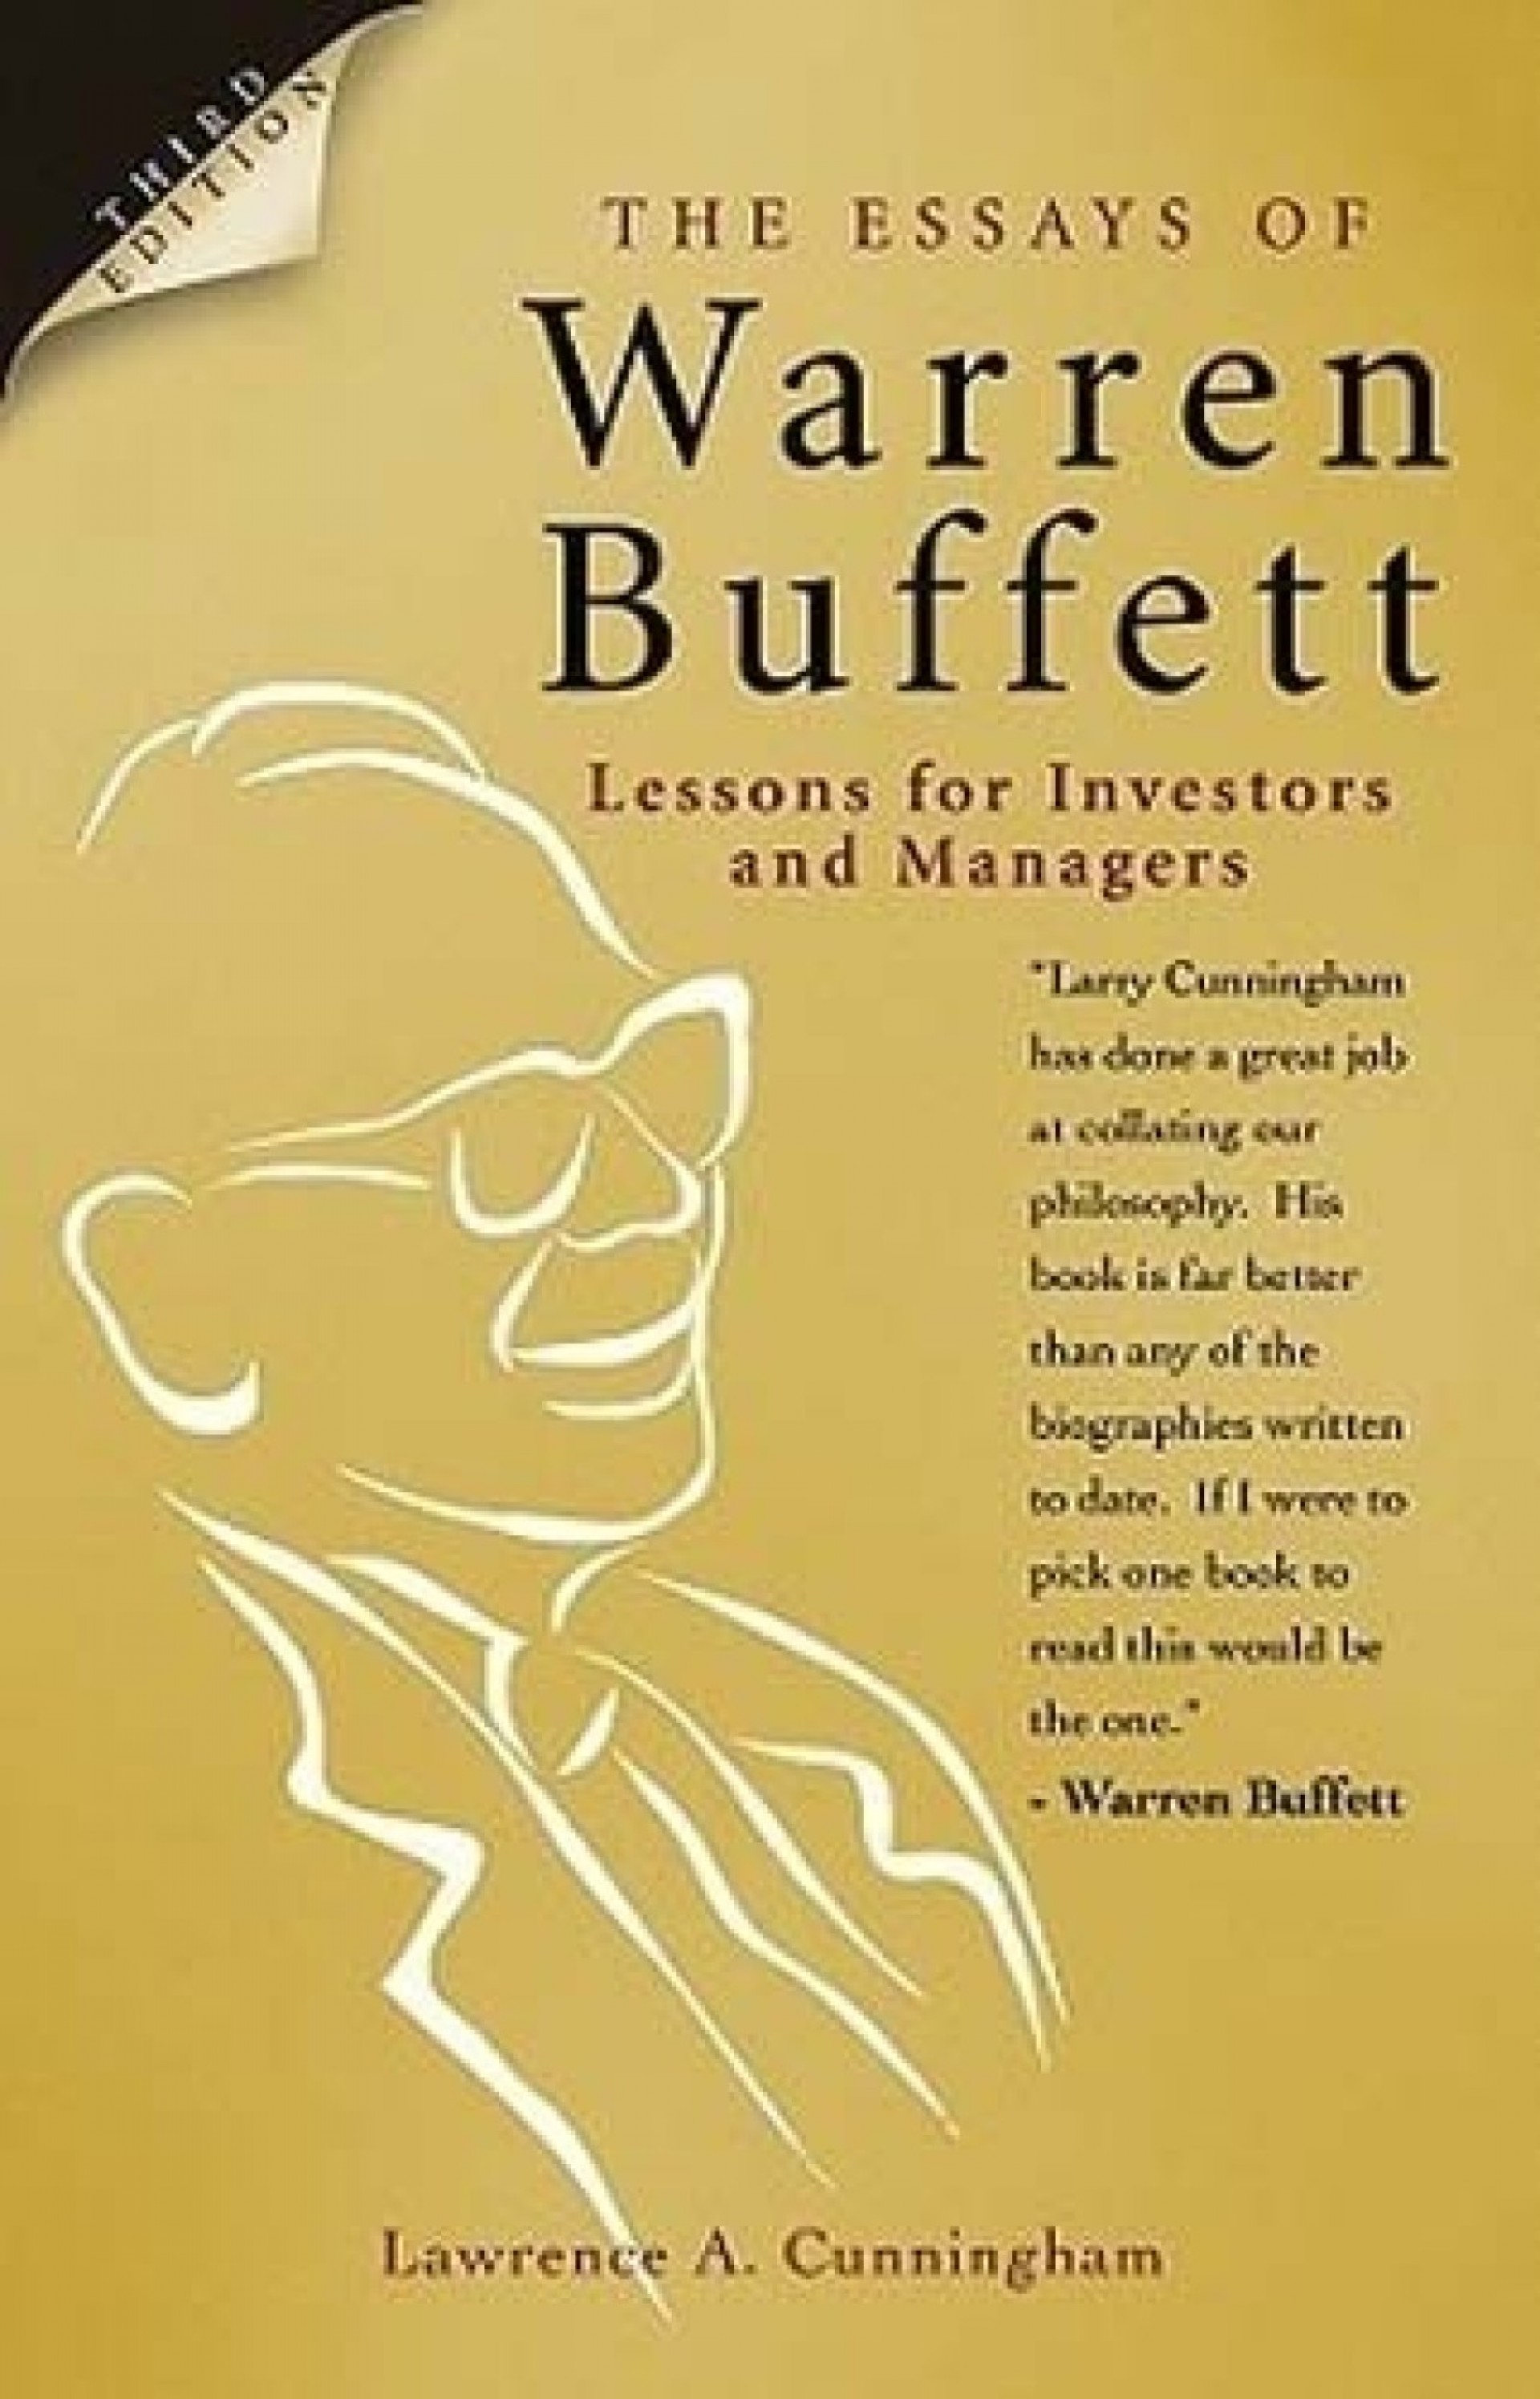 016 Essays Of Warren Buffett Essay Example The Lessons For Investors And Managers Original Top 4th Edition Pdf Free 1920